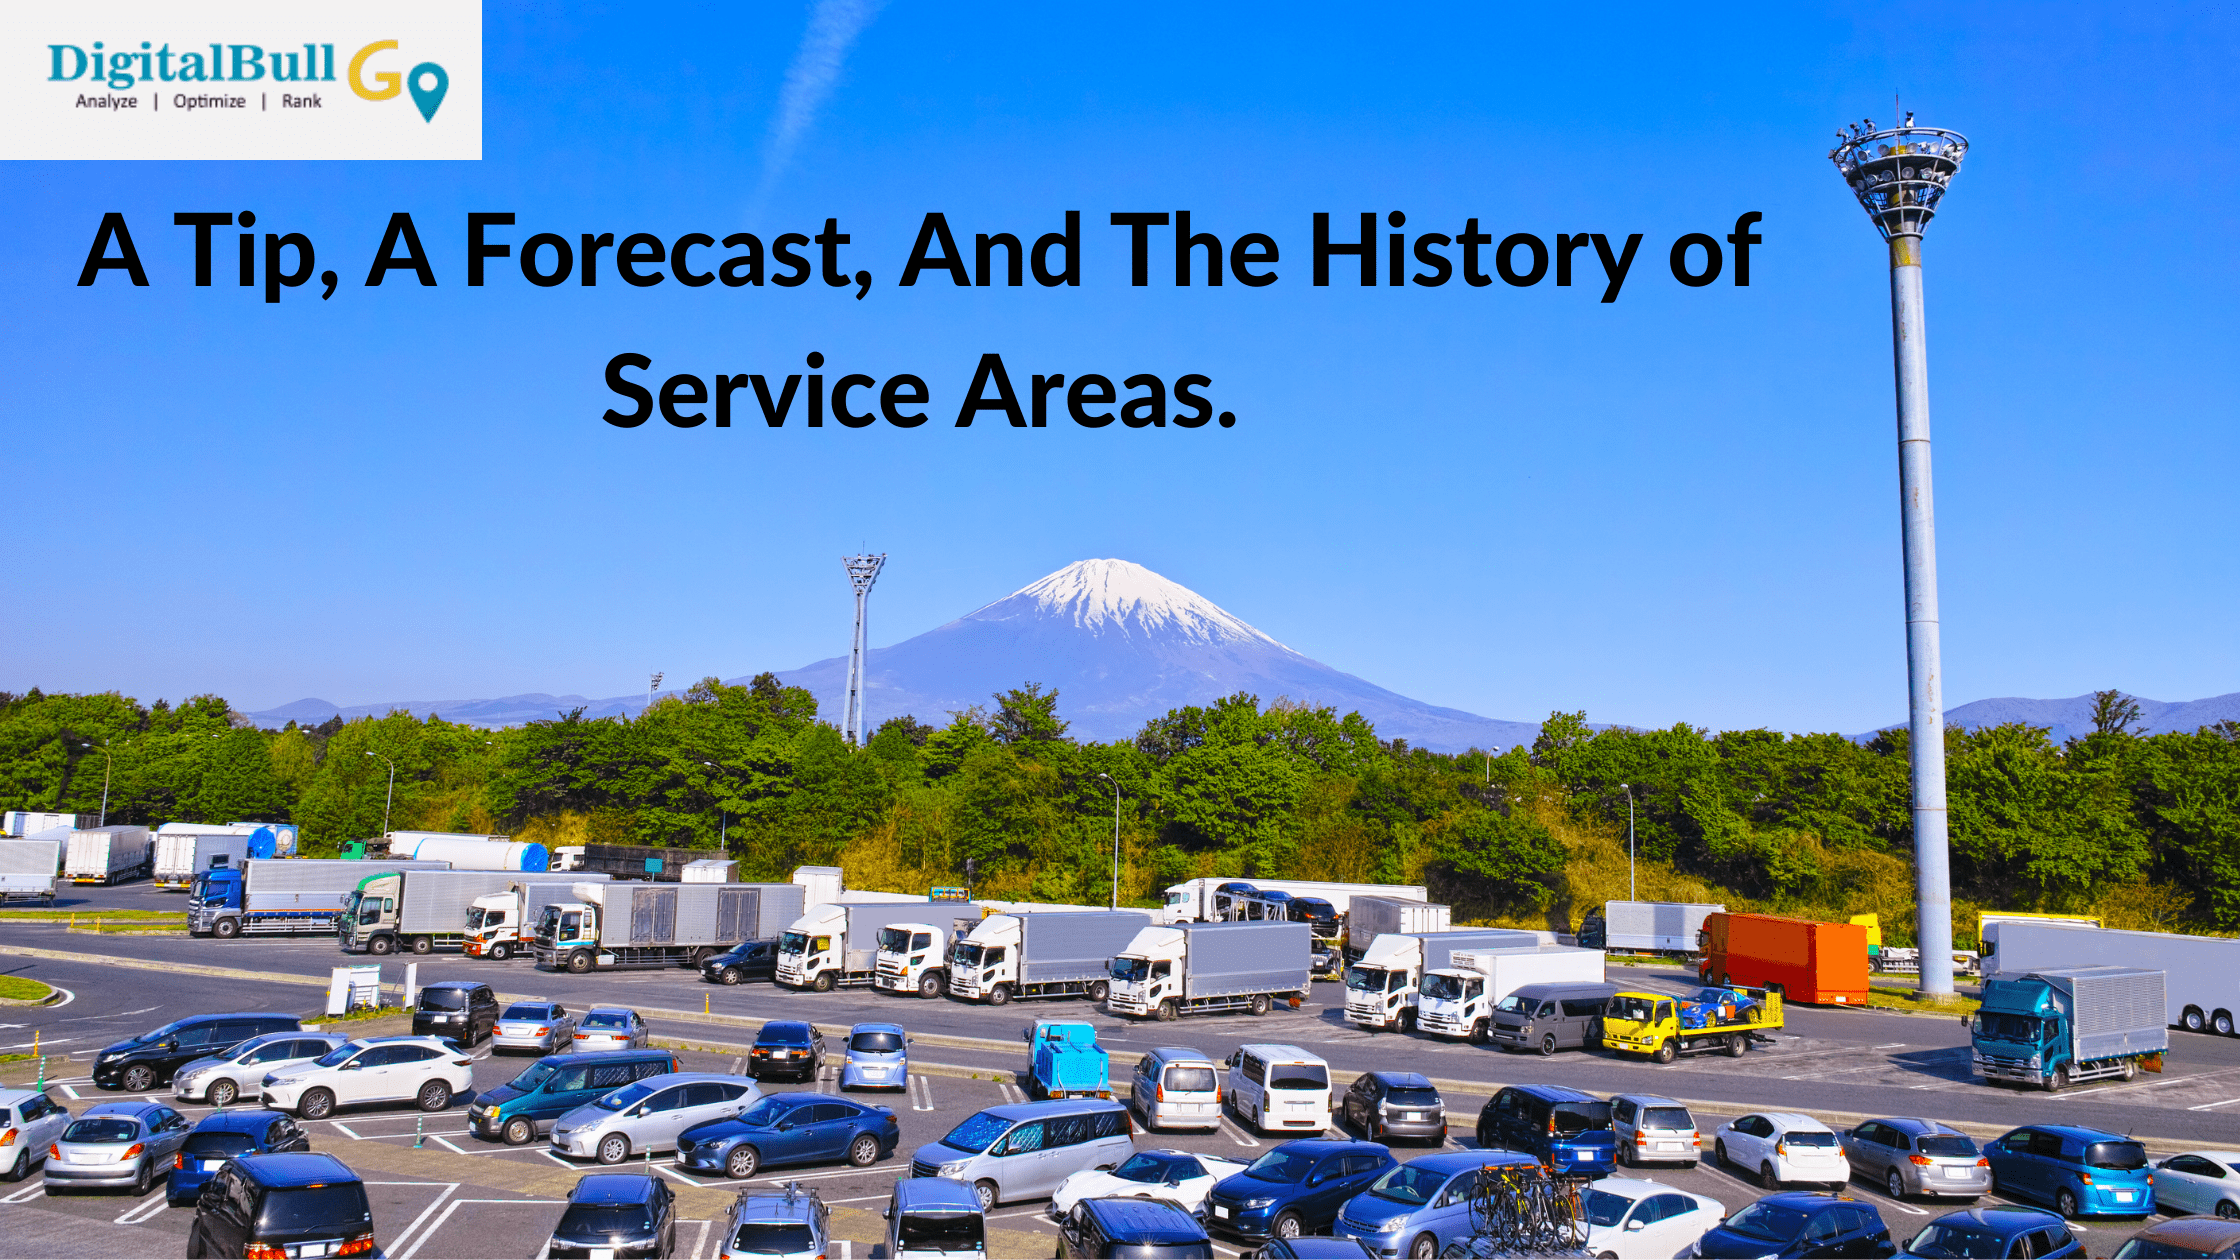 DigitalBull GO A Tip, A Forecast, And The History of Service Areas 1